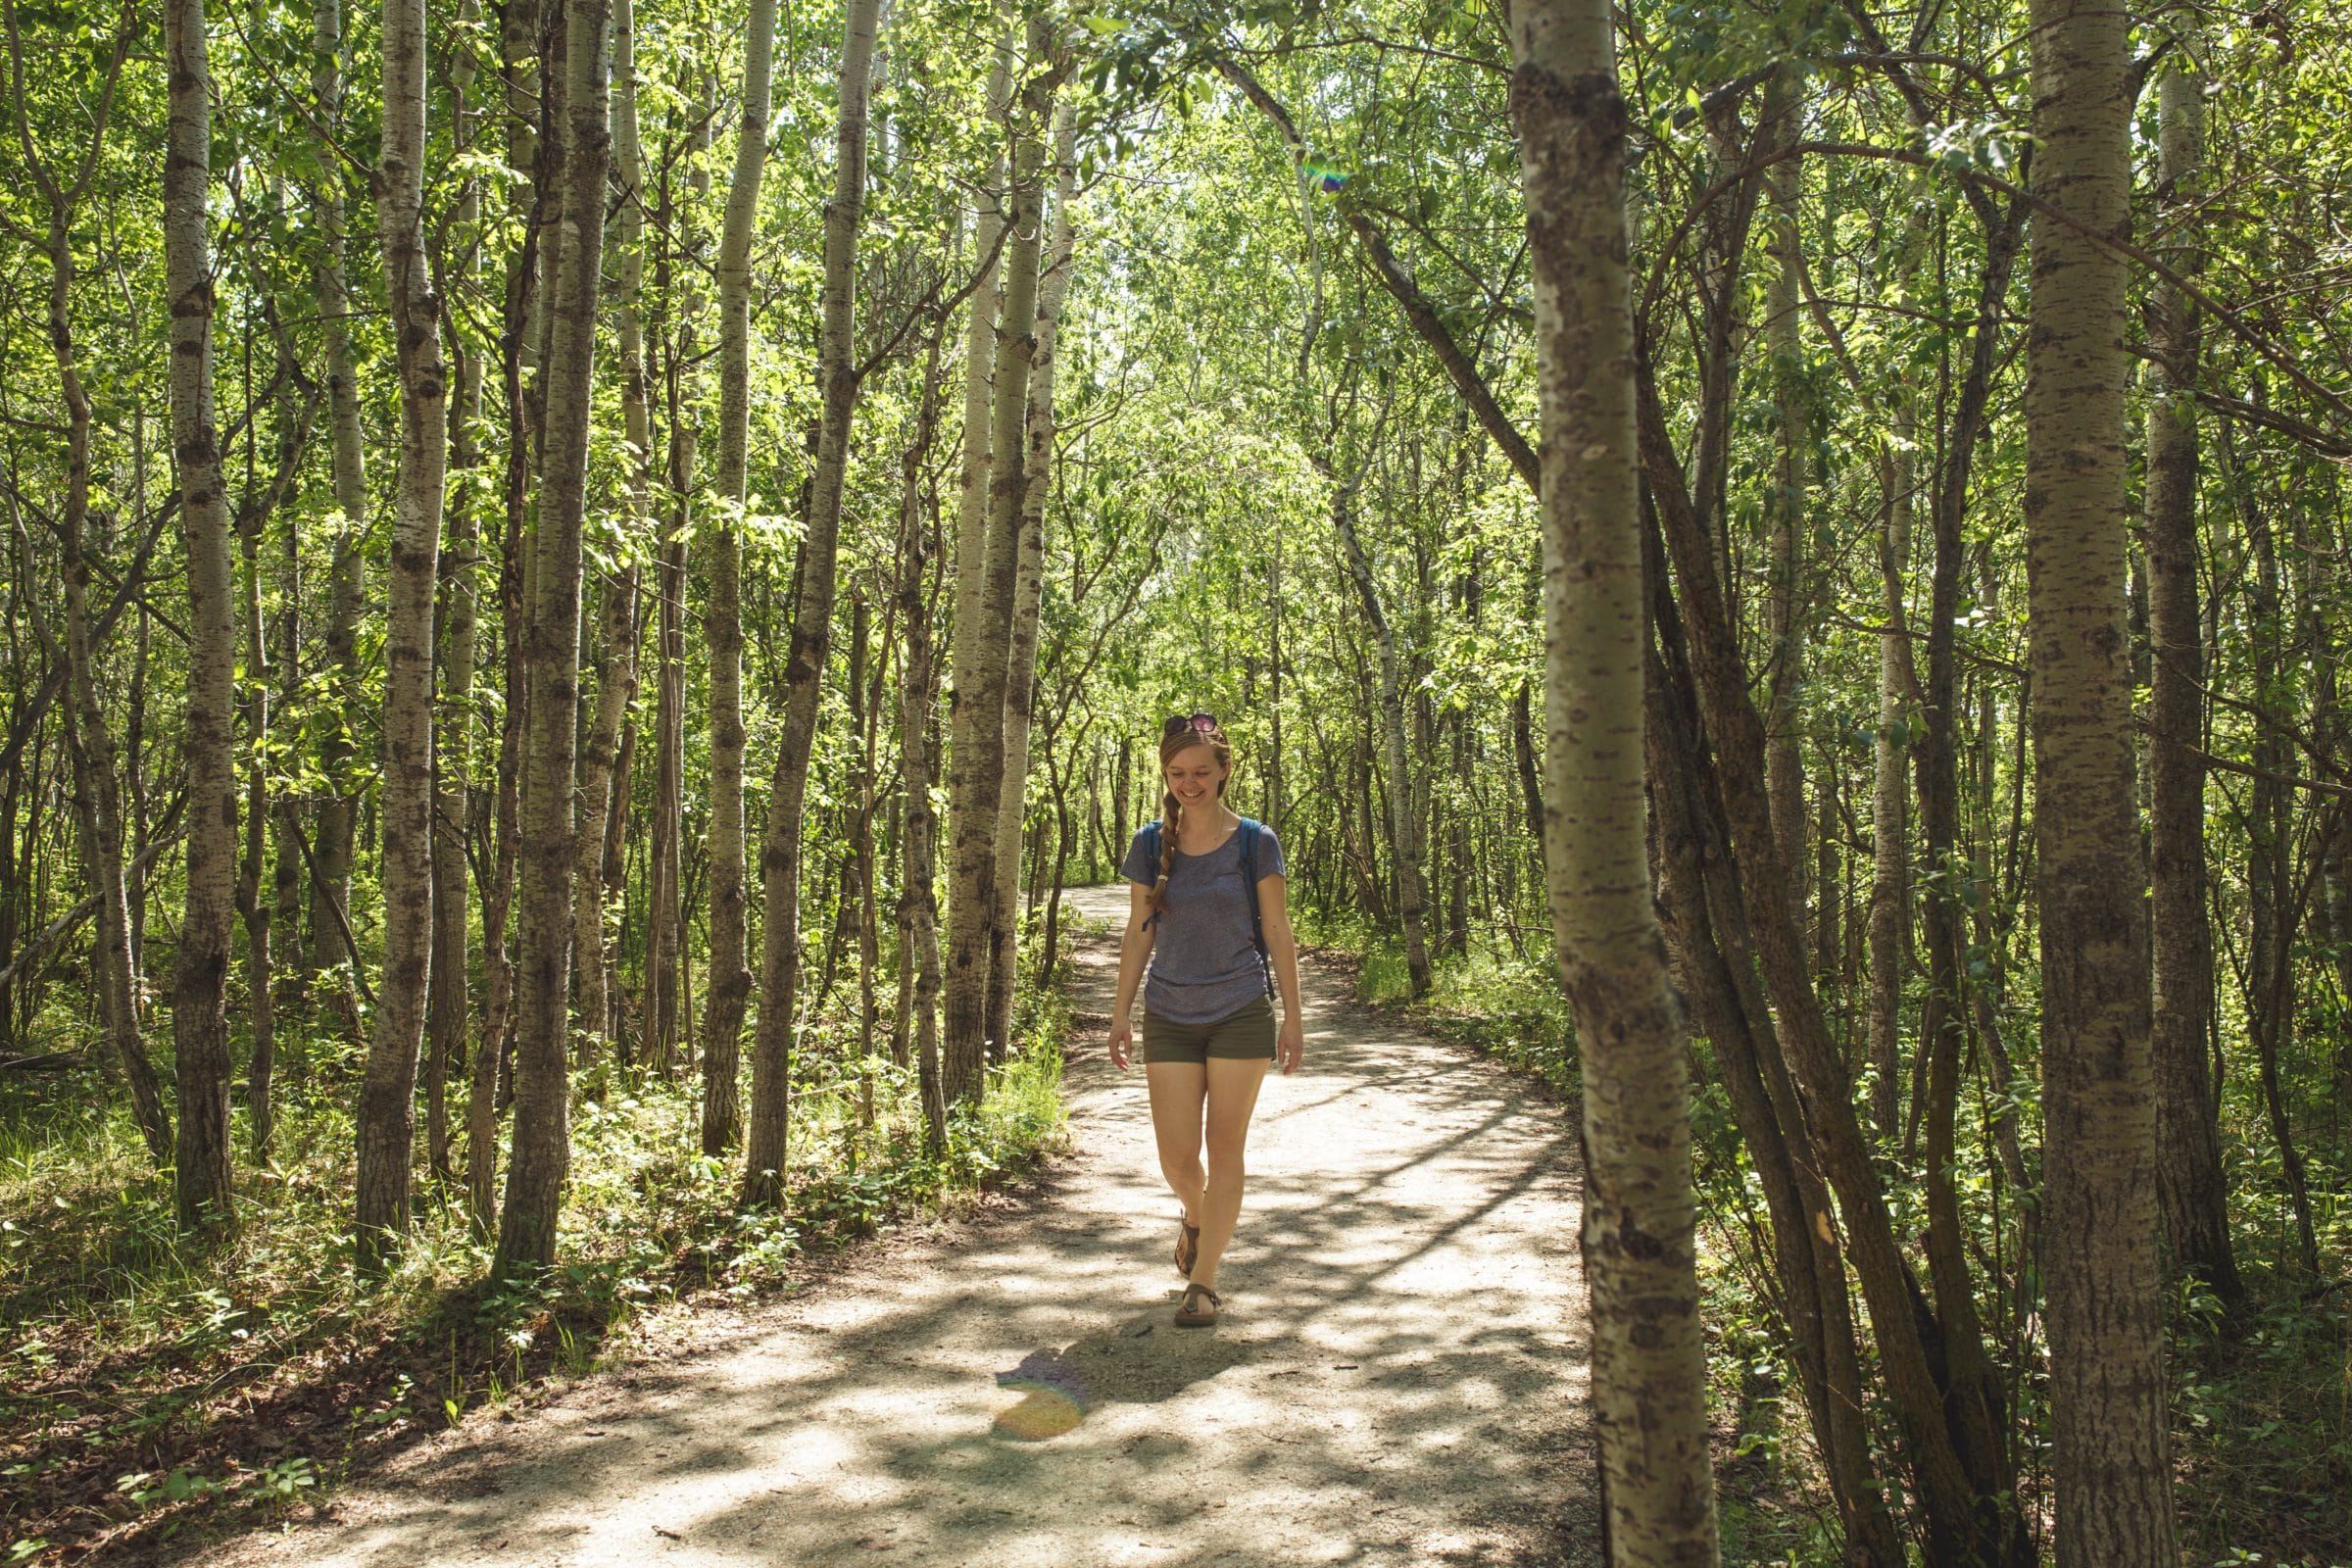 Individual walking on a trail through the forest in summer.